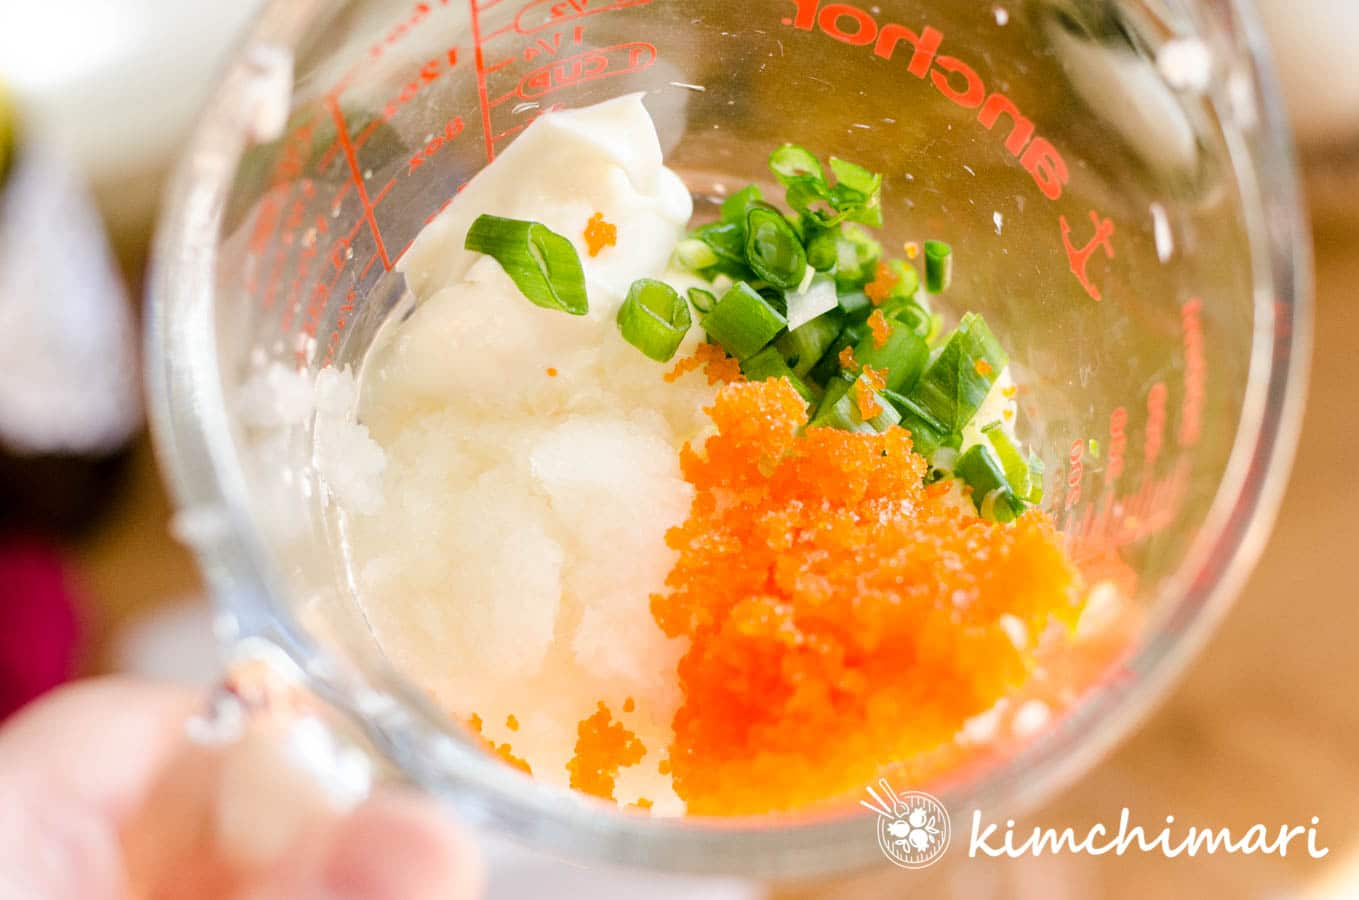 mayo masago onions are in a glass pyrex mixing cup